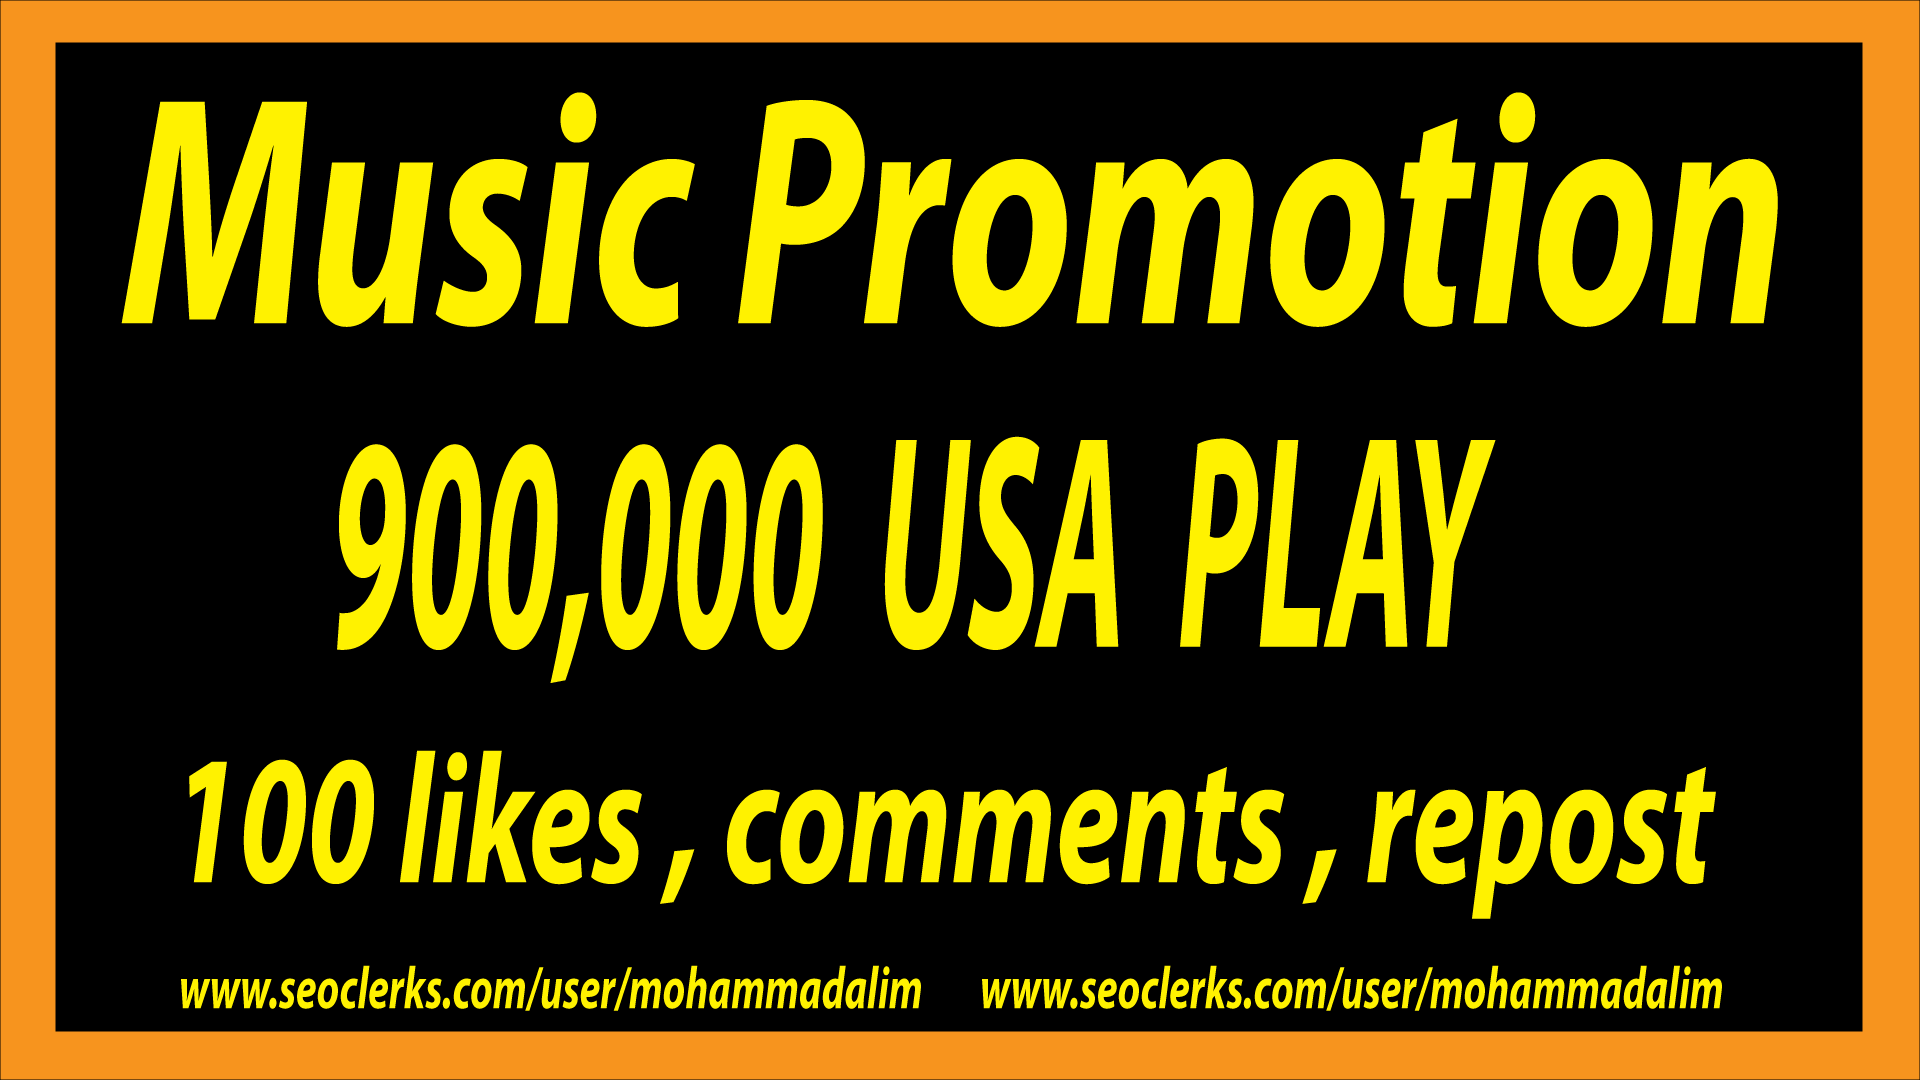 900,000 P'lays with 100 c'omments 100 l'ikes 100 repost  for a great music Promotion